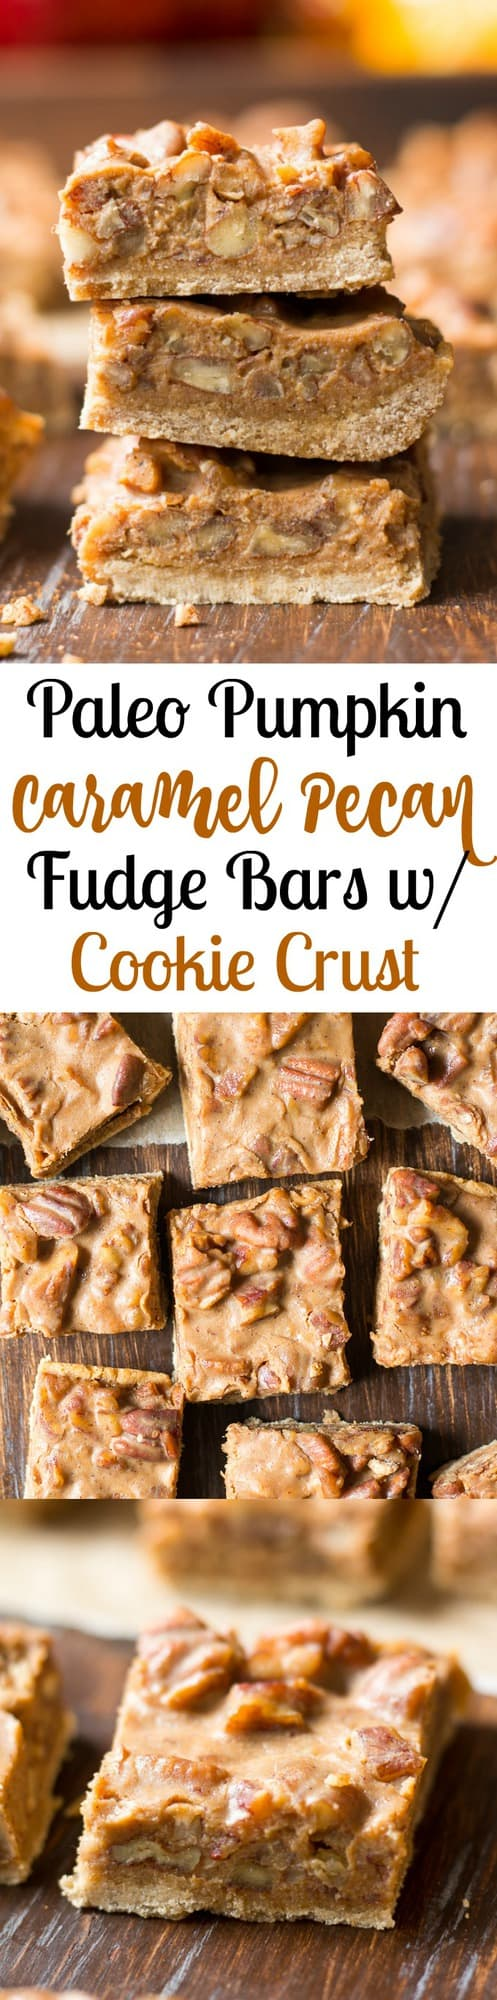 paleo-pumpkin-caramel-pecan-fudge-bars-with-cookie-crust